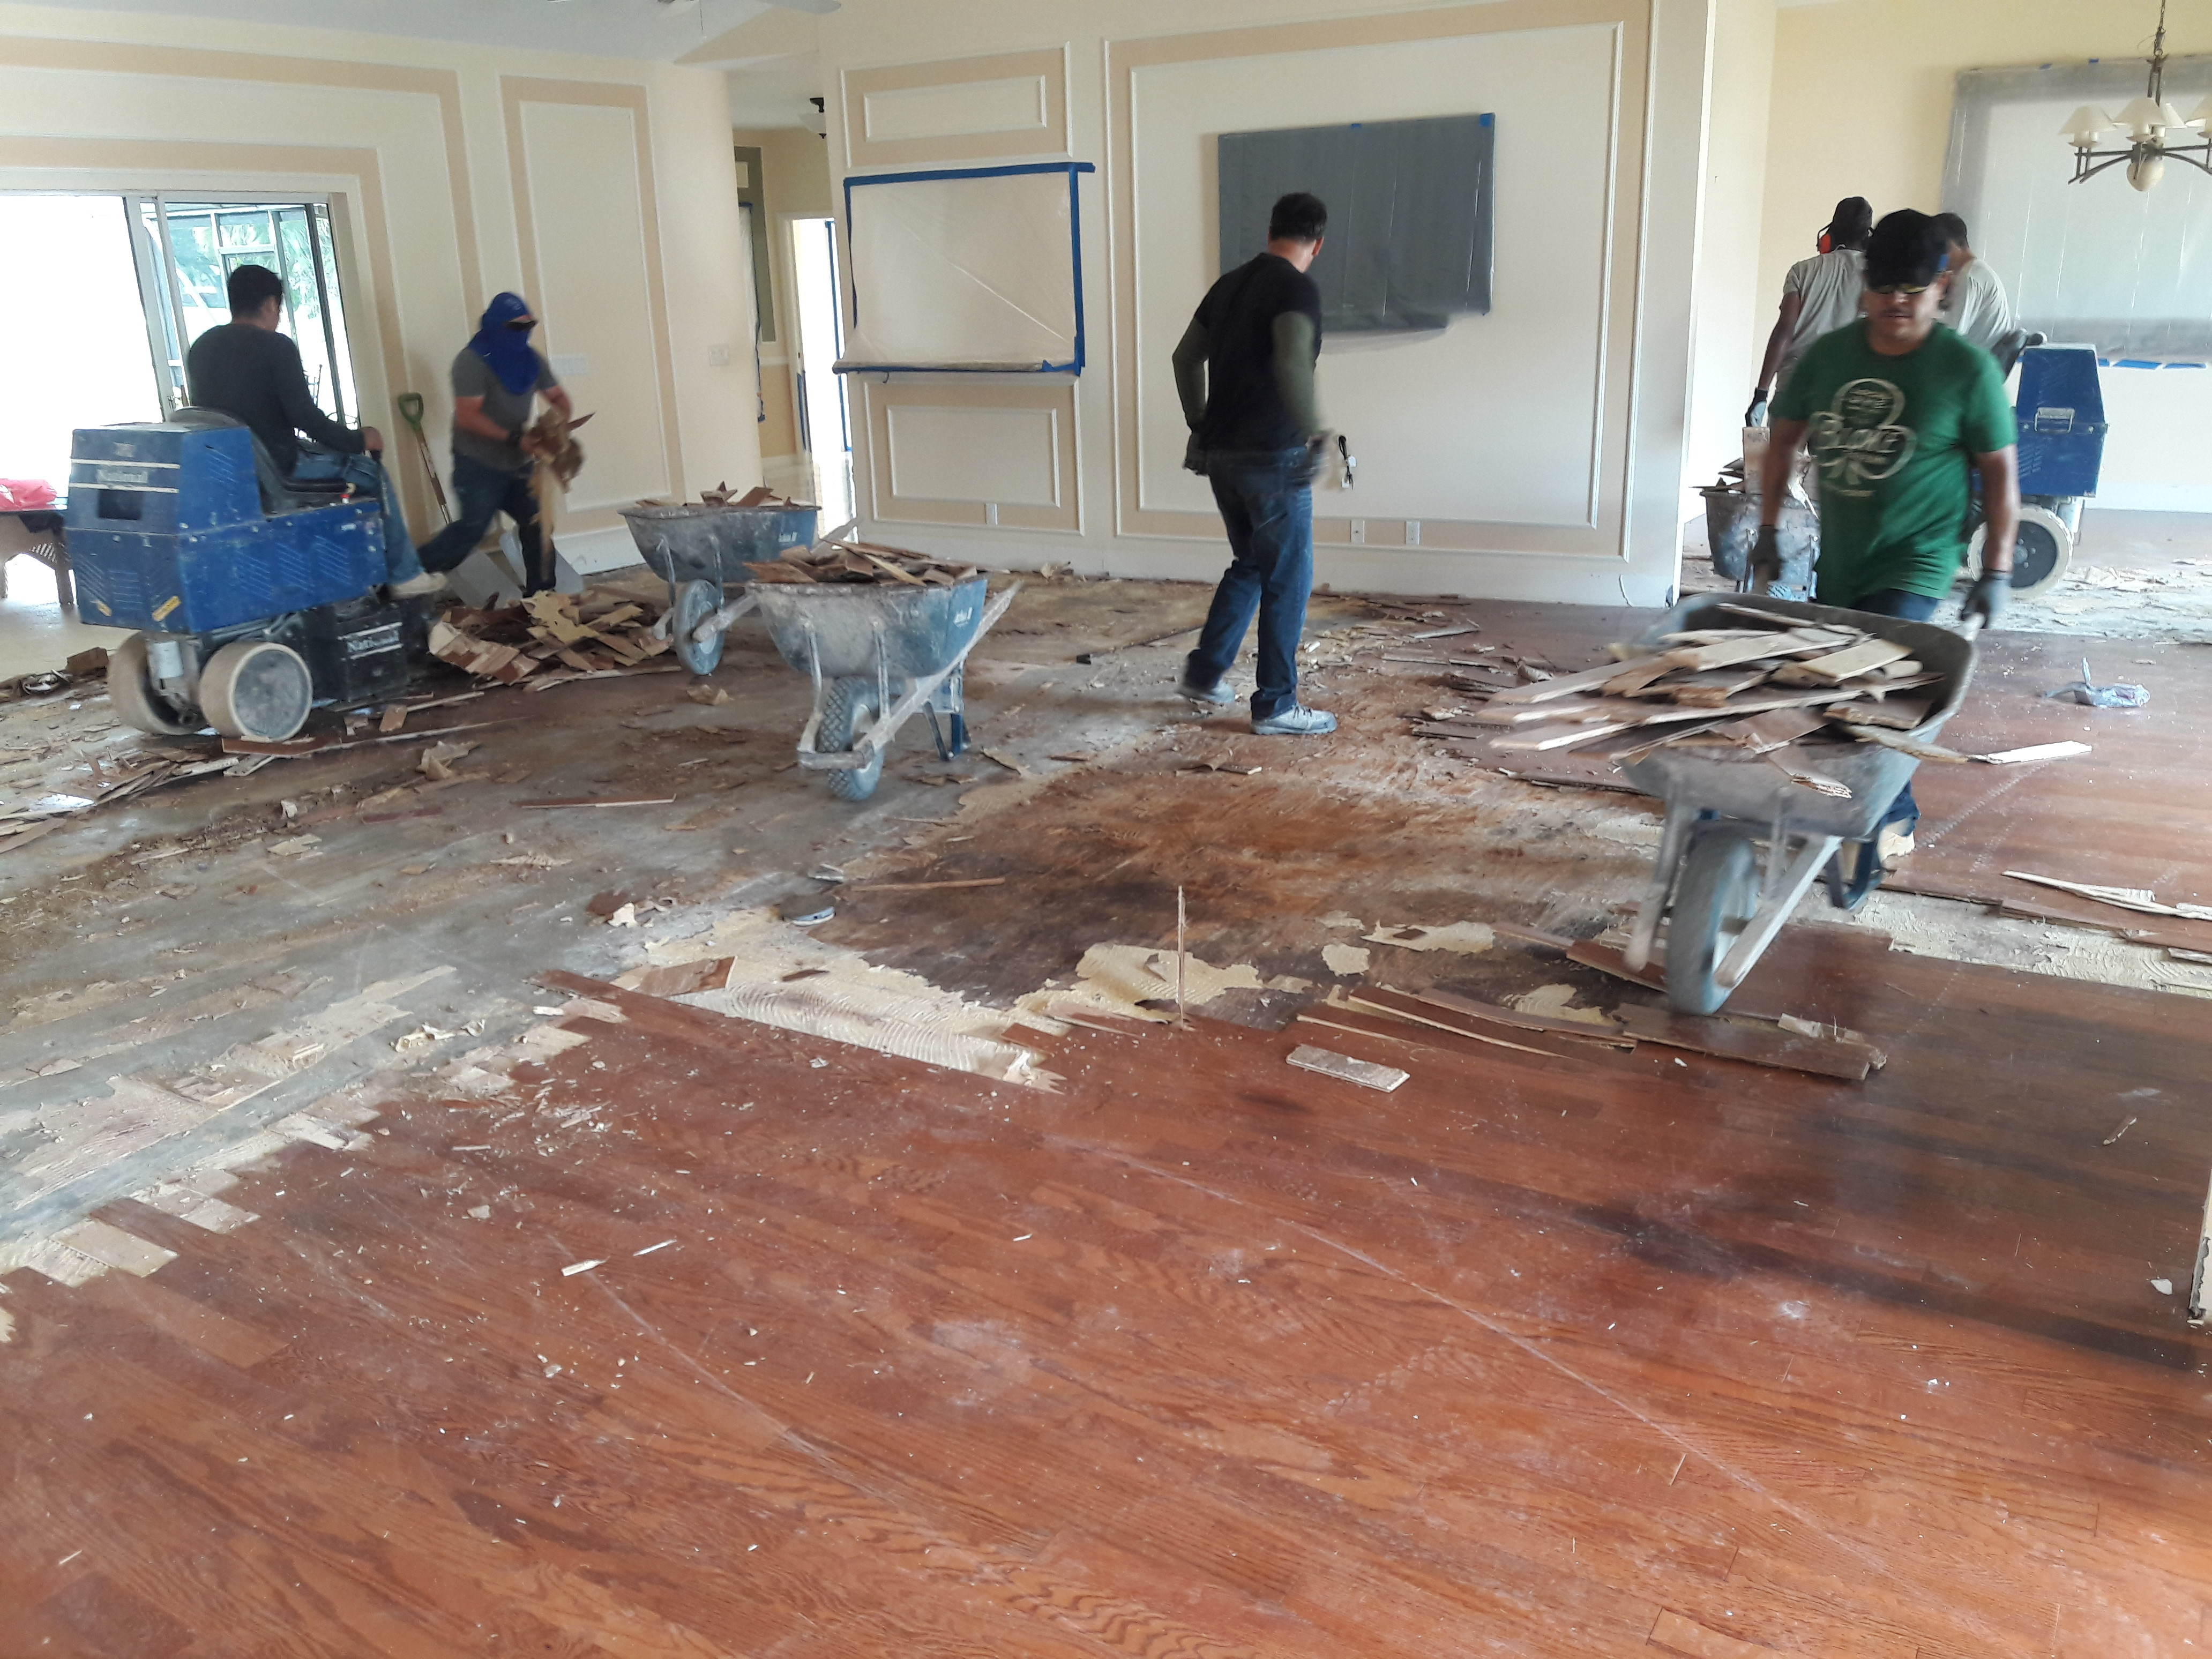 what is wood floor removal coral gables fl?